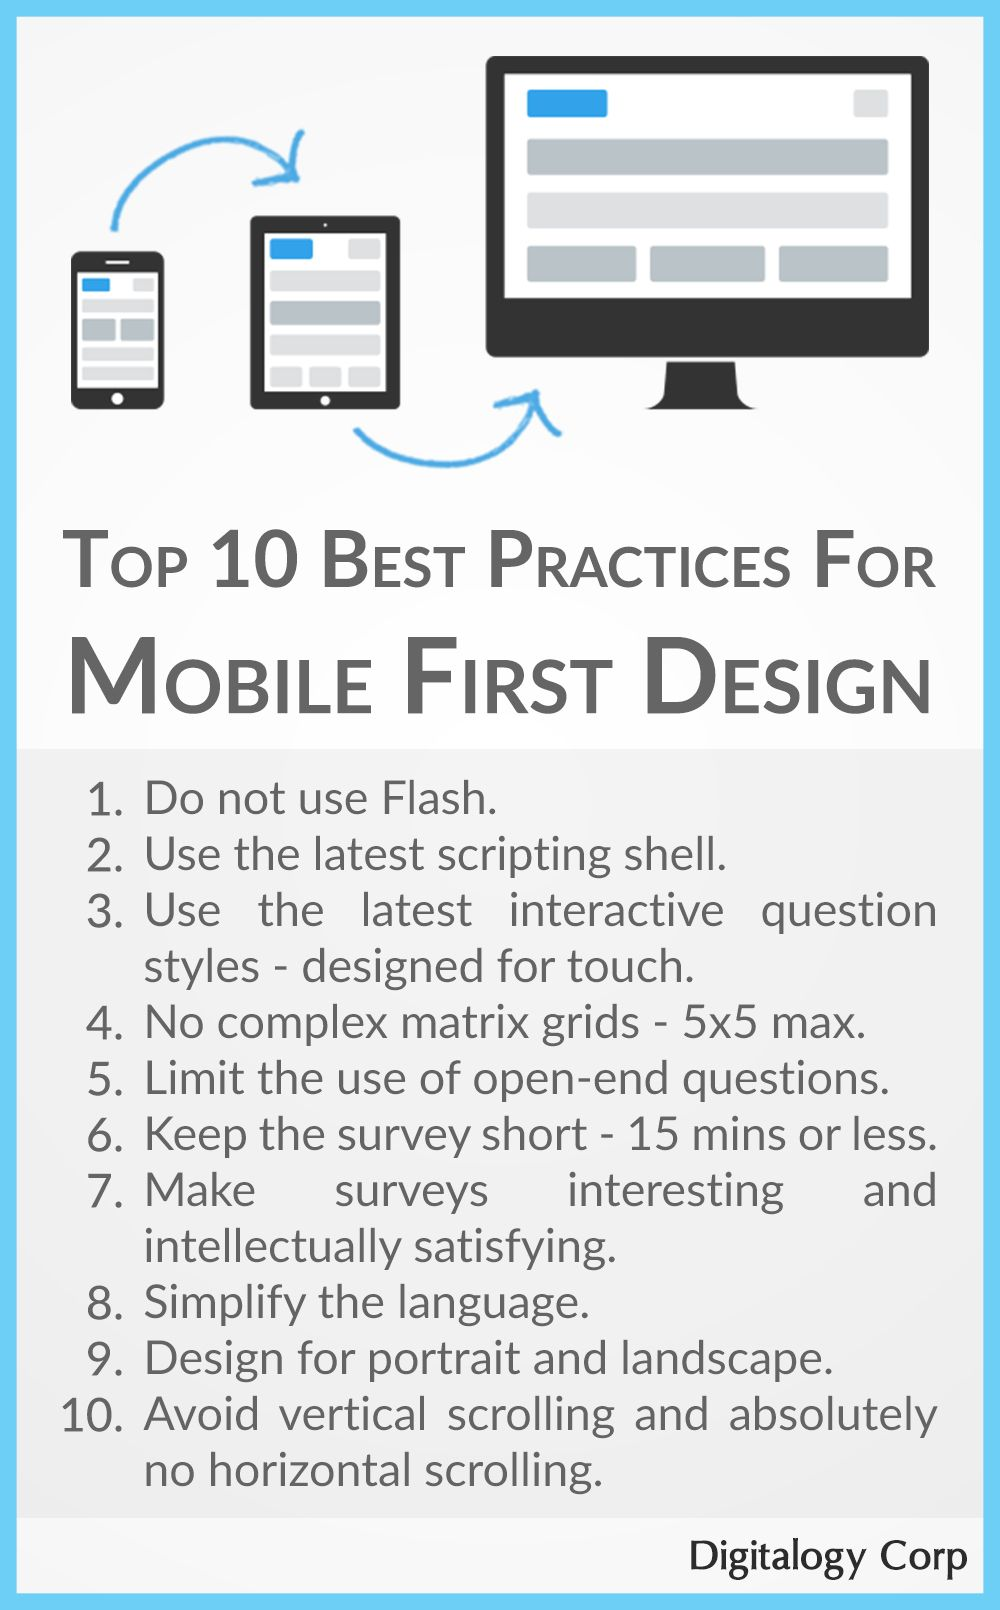 Top 10 Best Practices for Mobile First Design #mobile